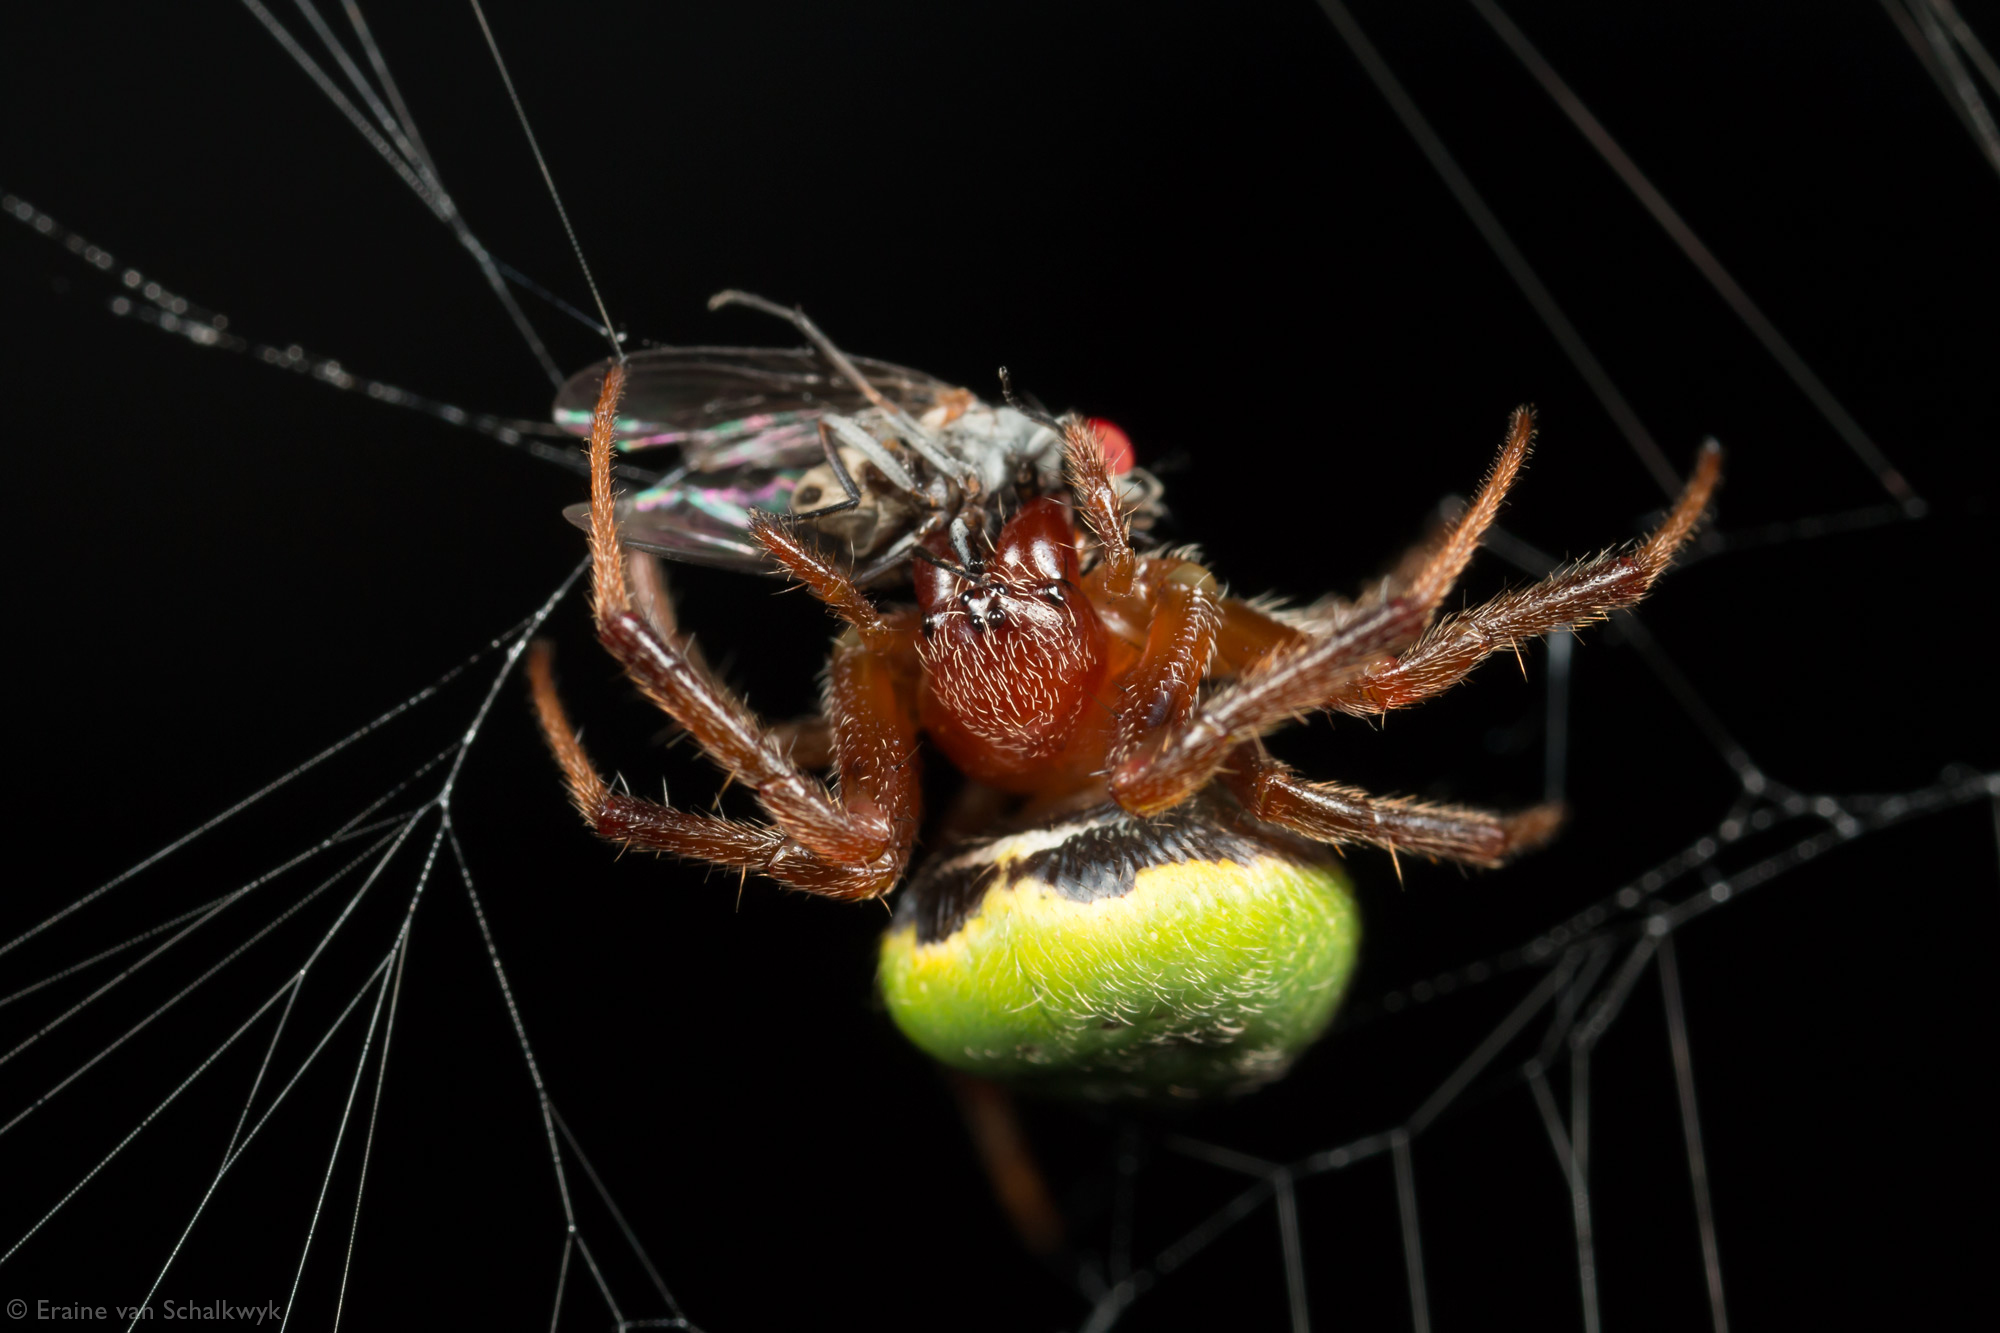 Green pea spider with prey, spider, arachnid, macro photography